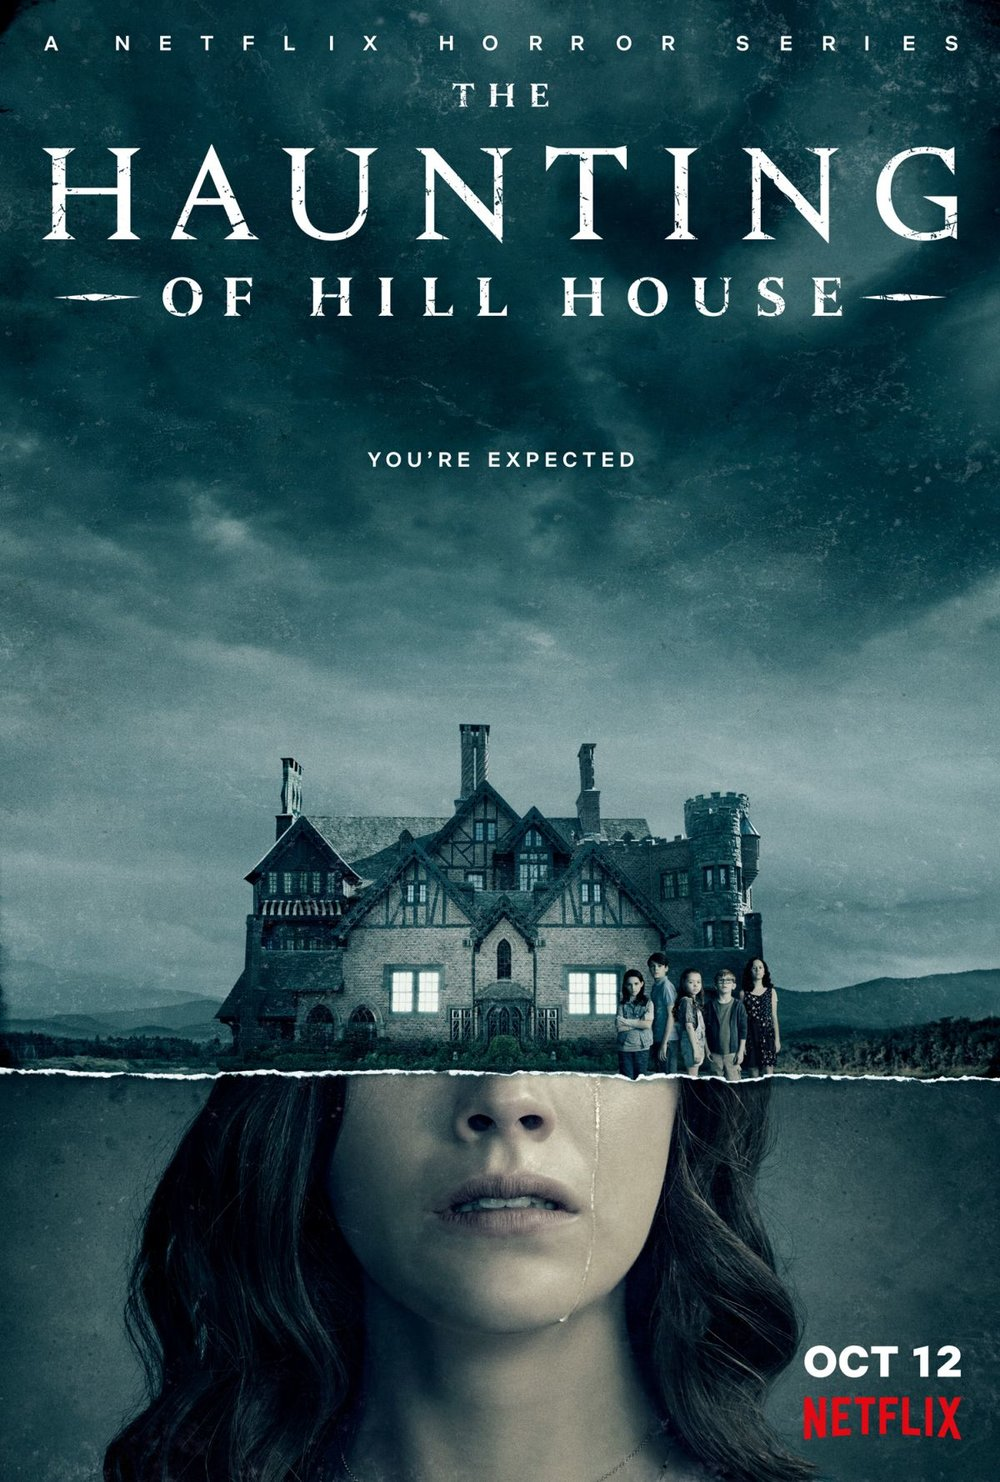 great-featurette-for-netflixs-creepy-new-horror-series-the-haunting-of-hill-house2